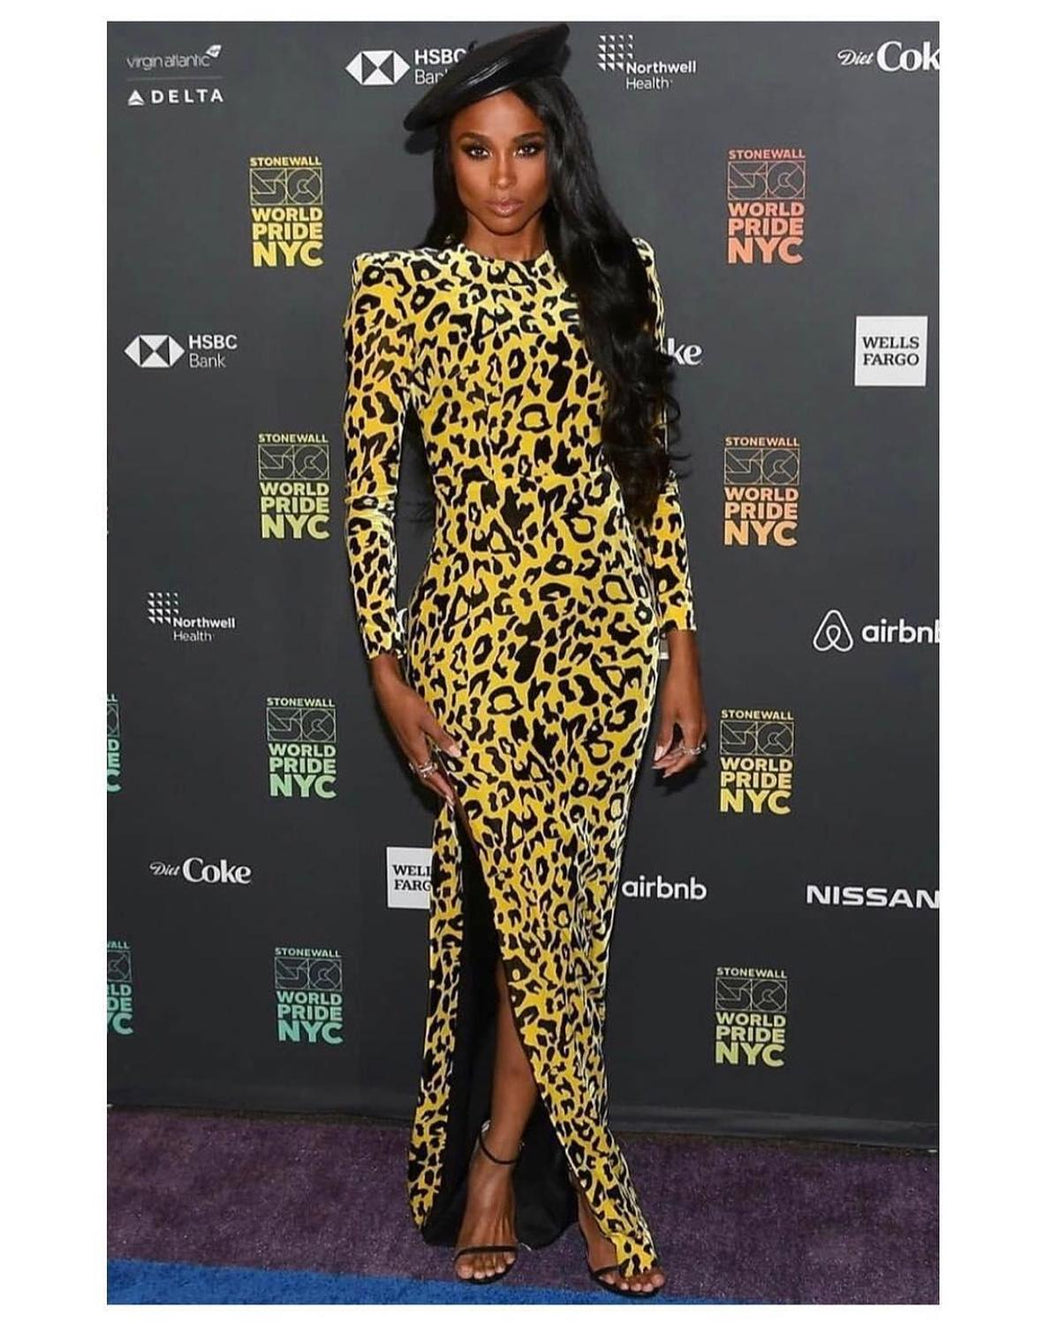 High Quality Celebrity Yellow Long Sleeve Leopard Print Dress Evening Party Dress - DivaJean